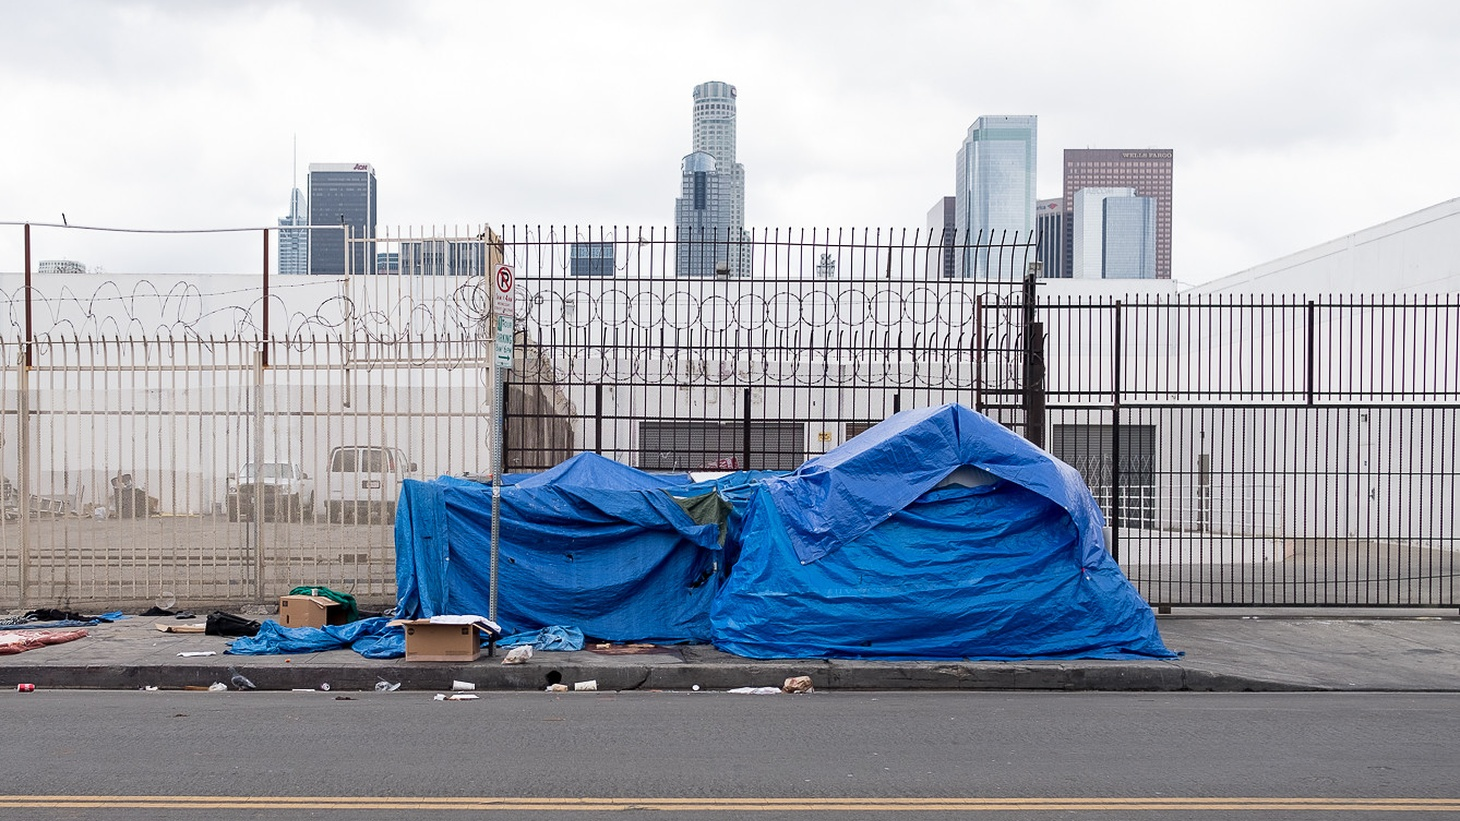 As the coronavirus injects new fears into the everyday lives of many, Dr. Susan Partovi says the problems facing those living on LA's Skid Row remain consistent.